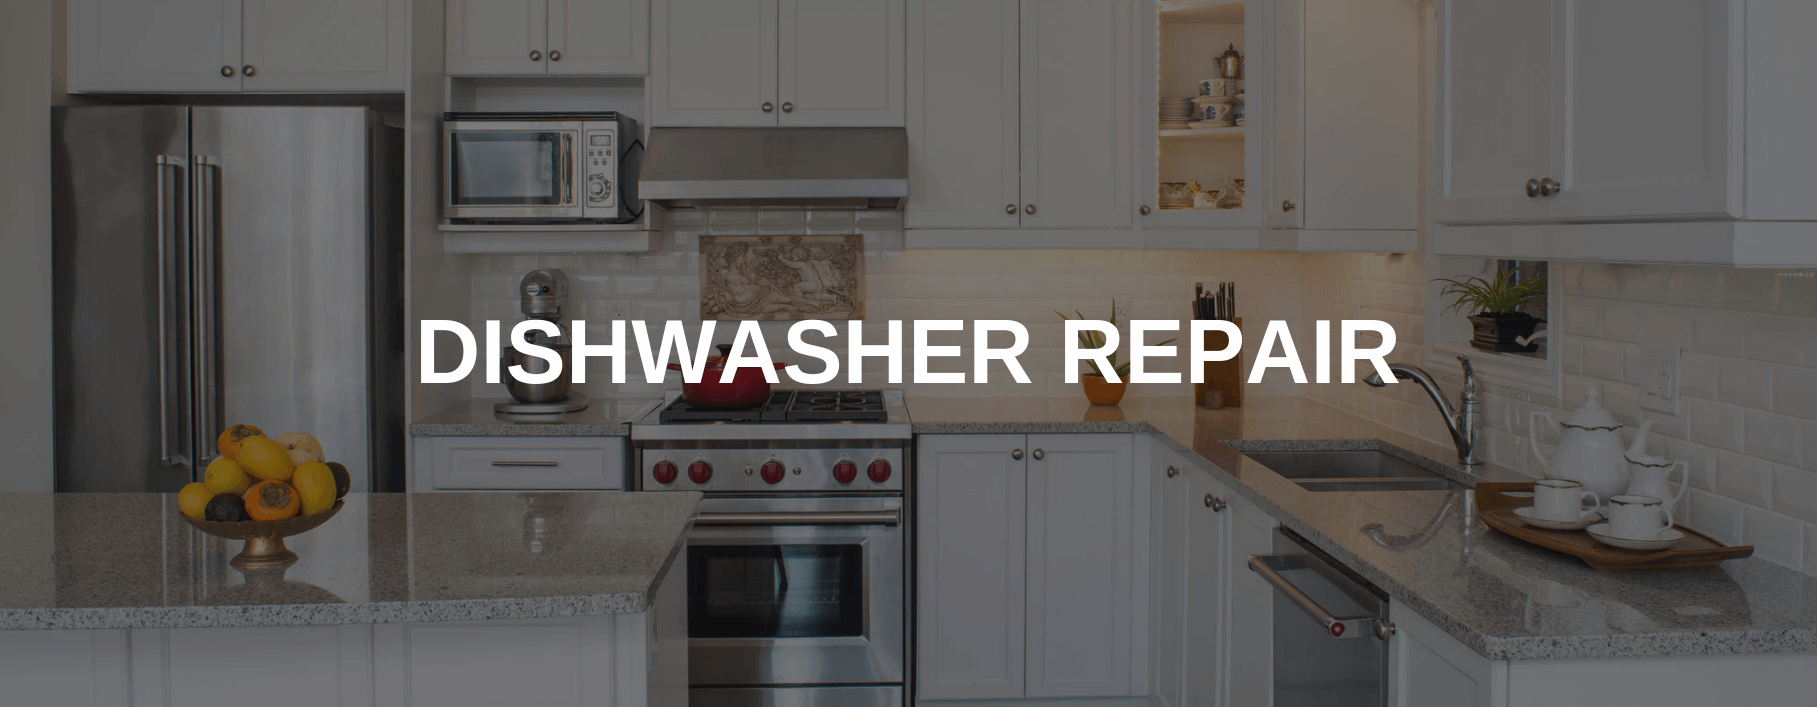 dishwasher repair smithtown